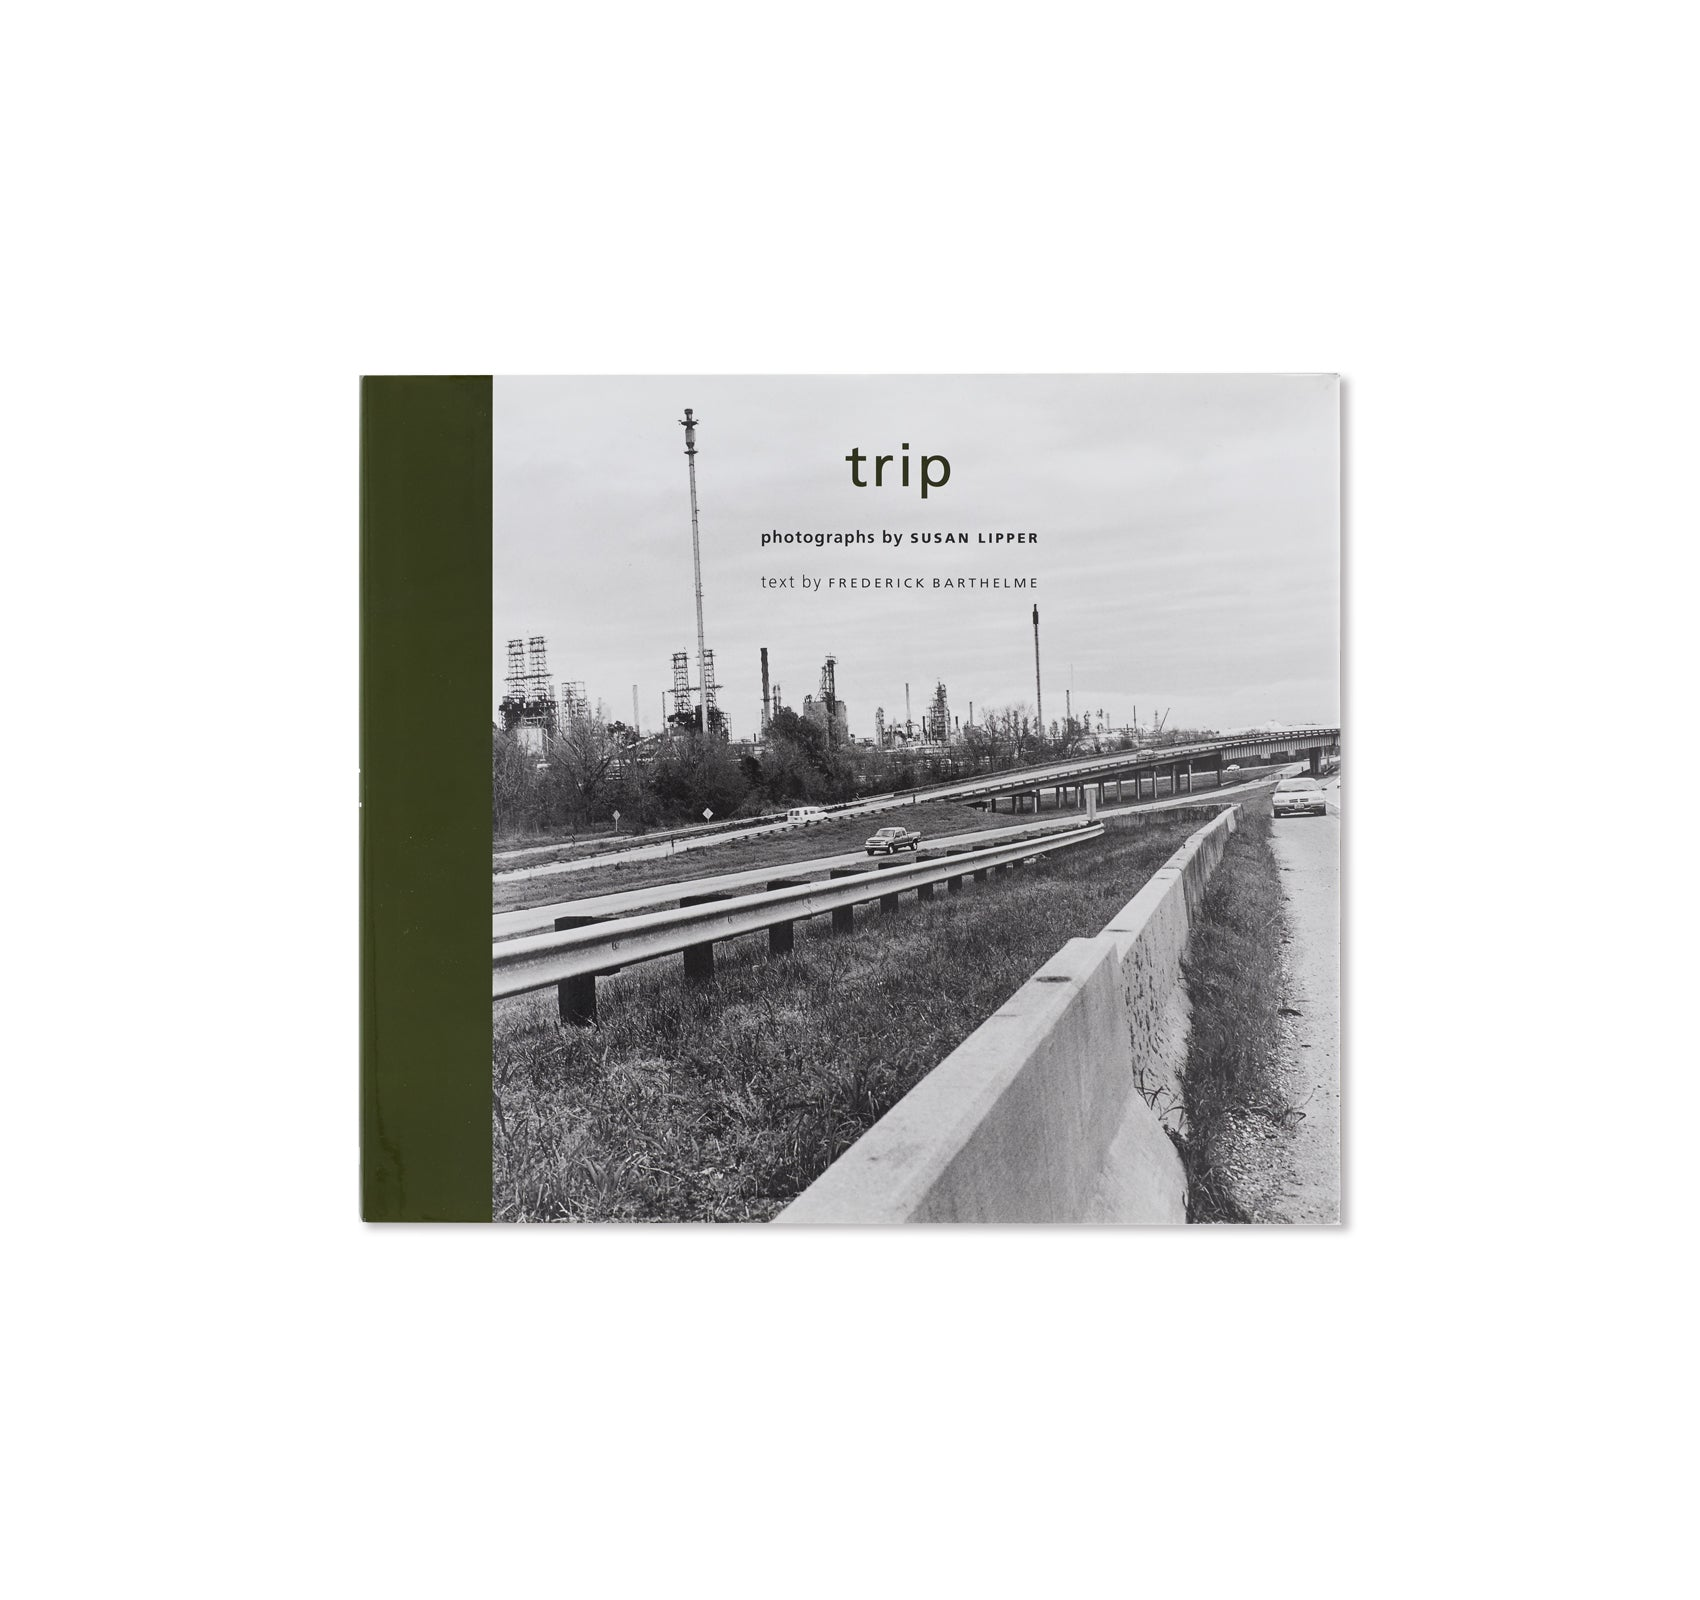 TRIP by Susan Lipper